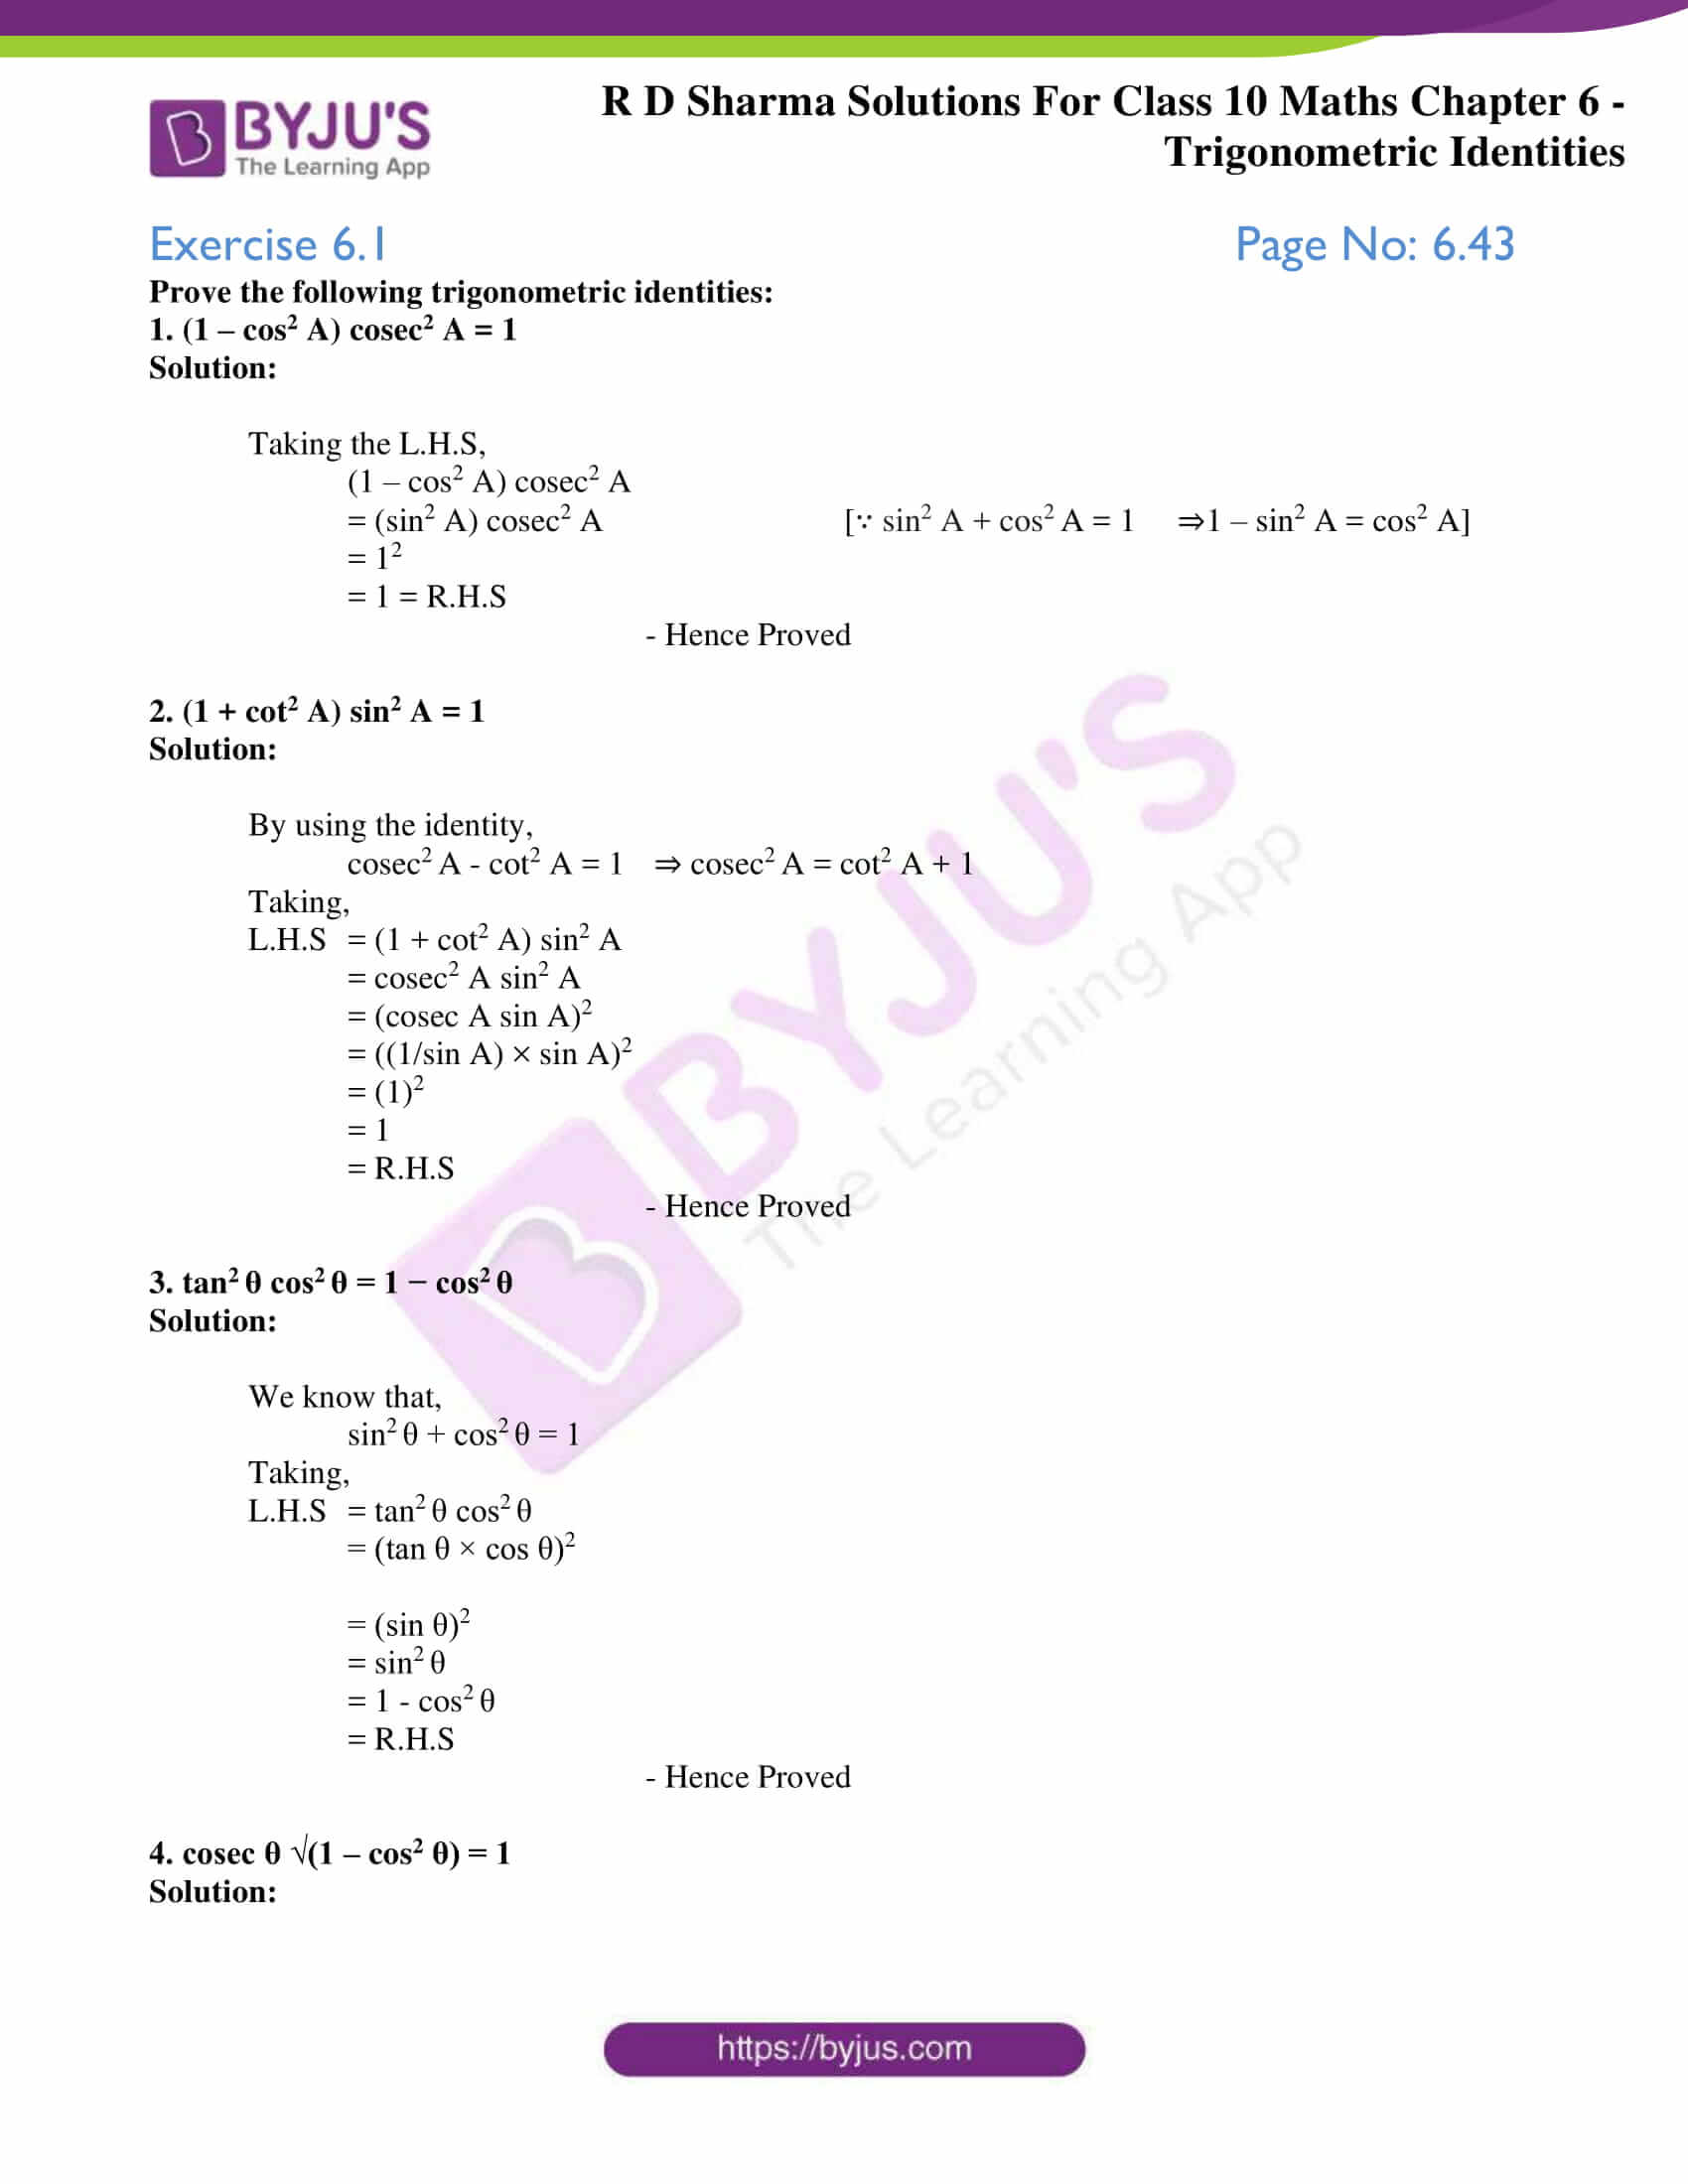 RD Sharma Solutions for Class 10 Chapter 6 Trigonometric Identities 01